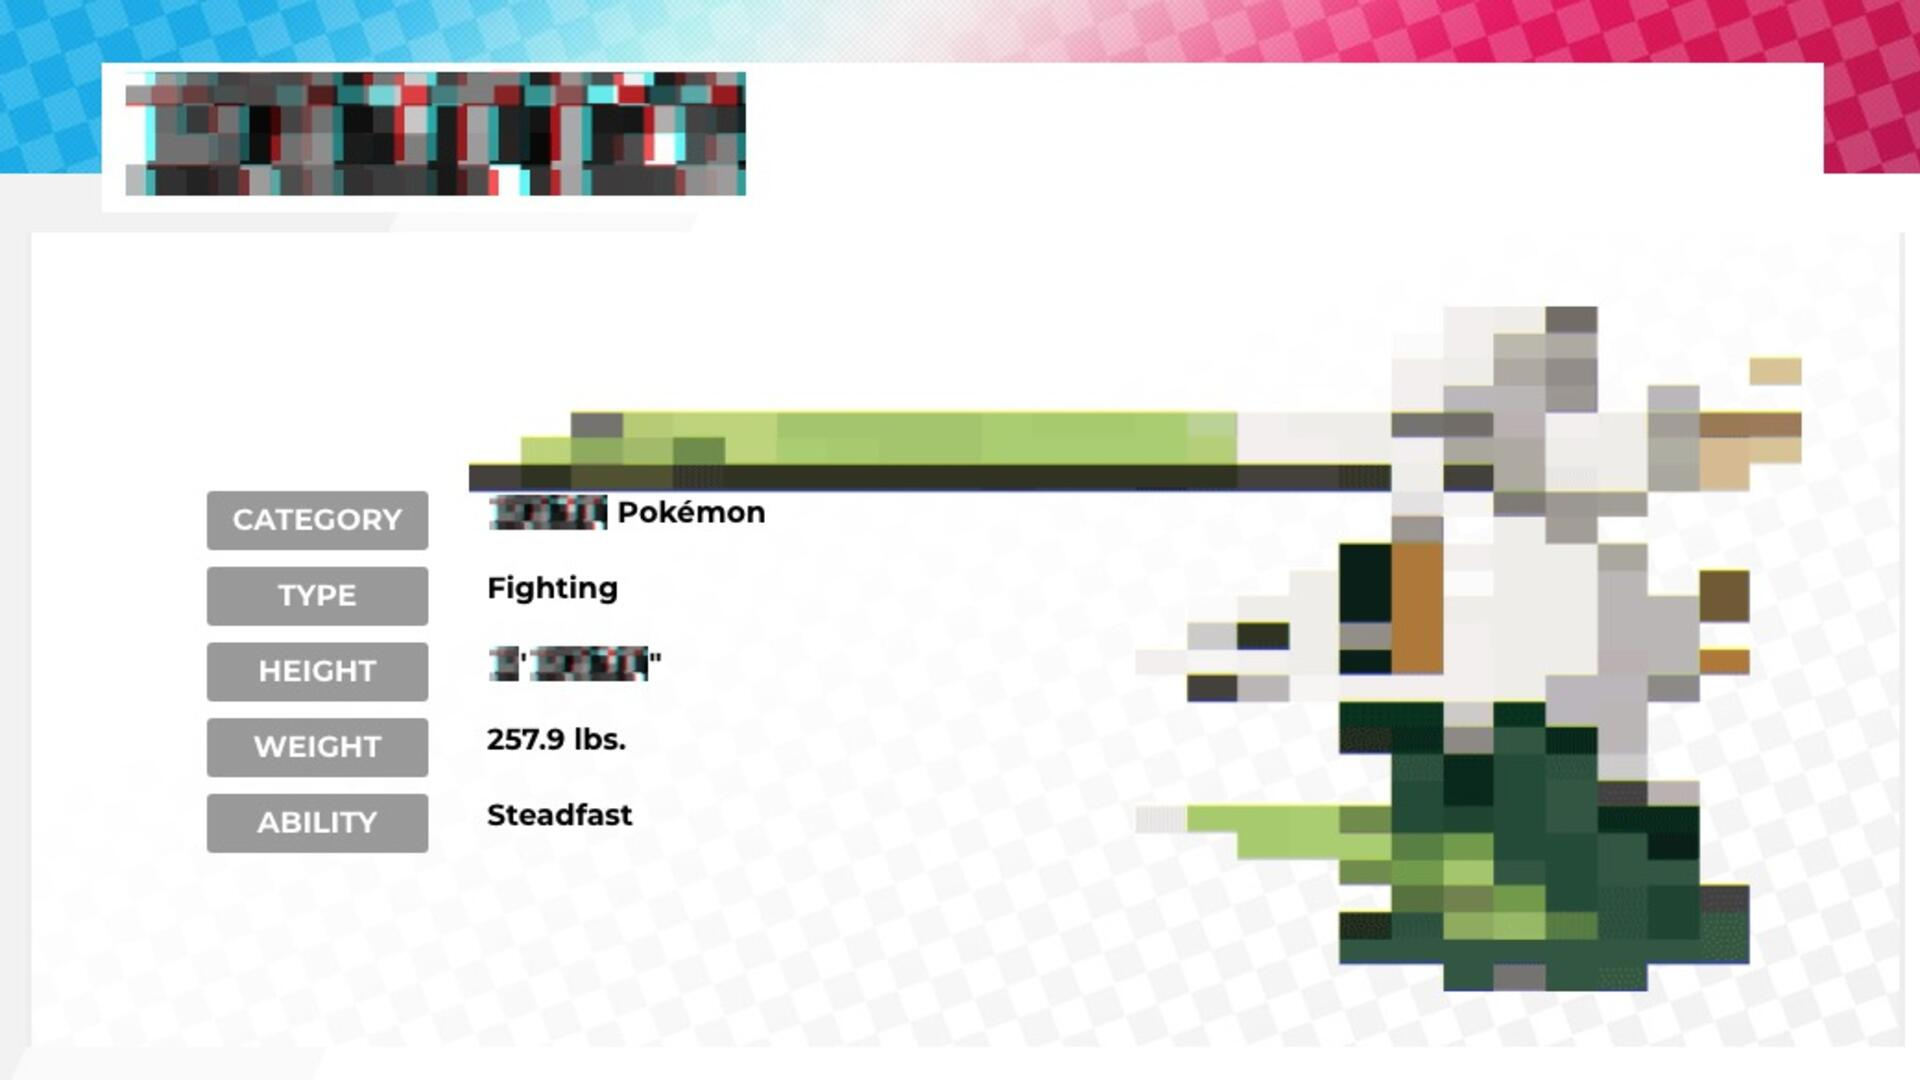 Creepy New Pokemon Tease for Sword and Shield Feels Reminiscent of MissingNo.